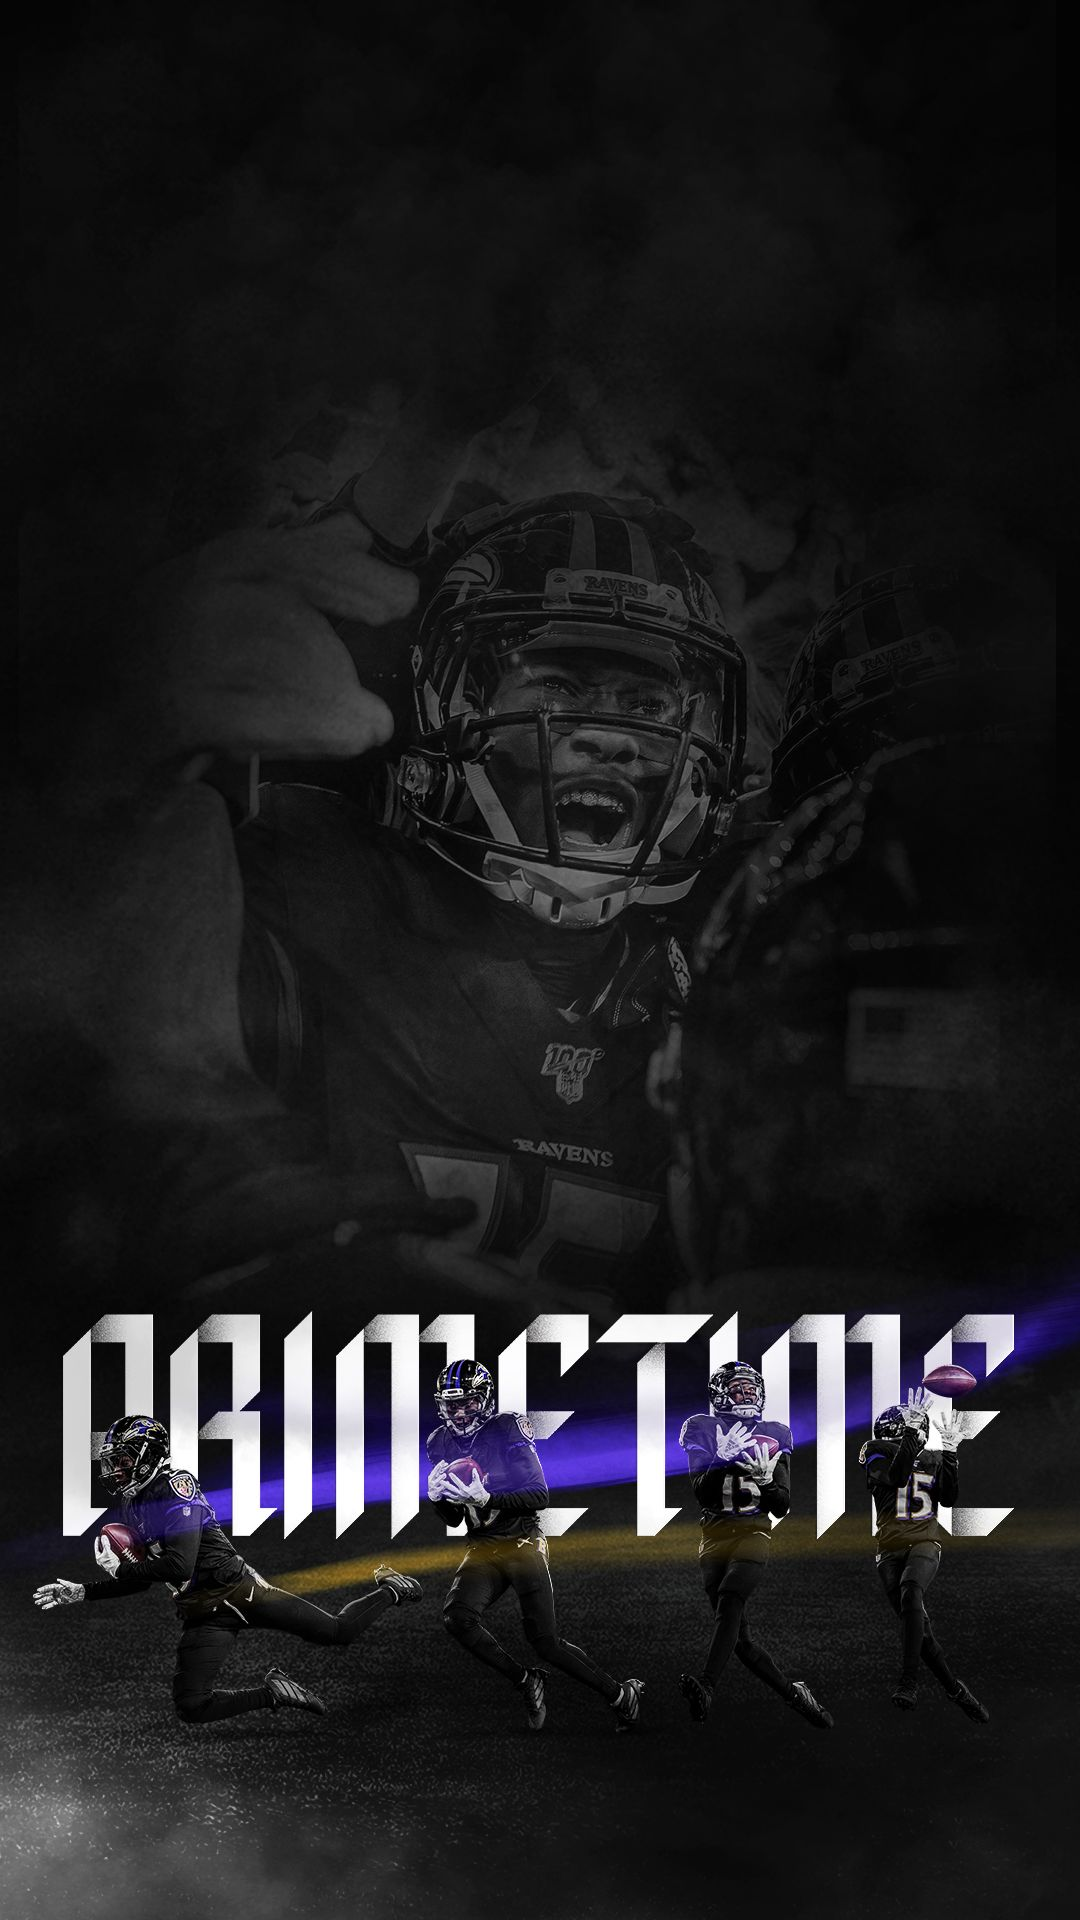 Ravens Wallpapers Baltimore Ravens Baltimoreravens Com